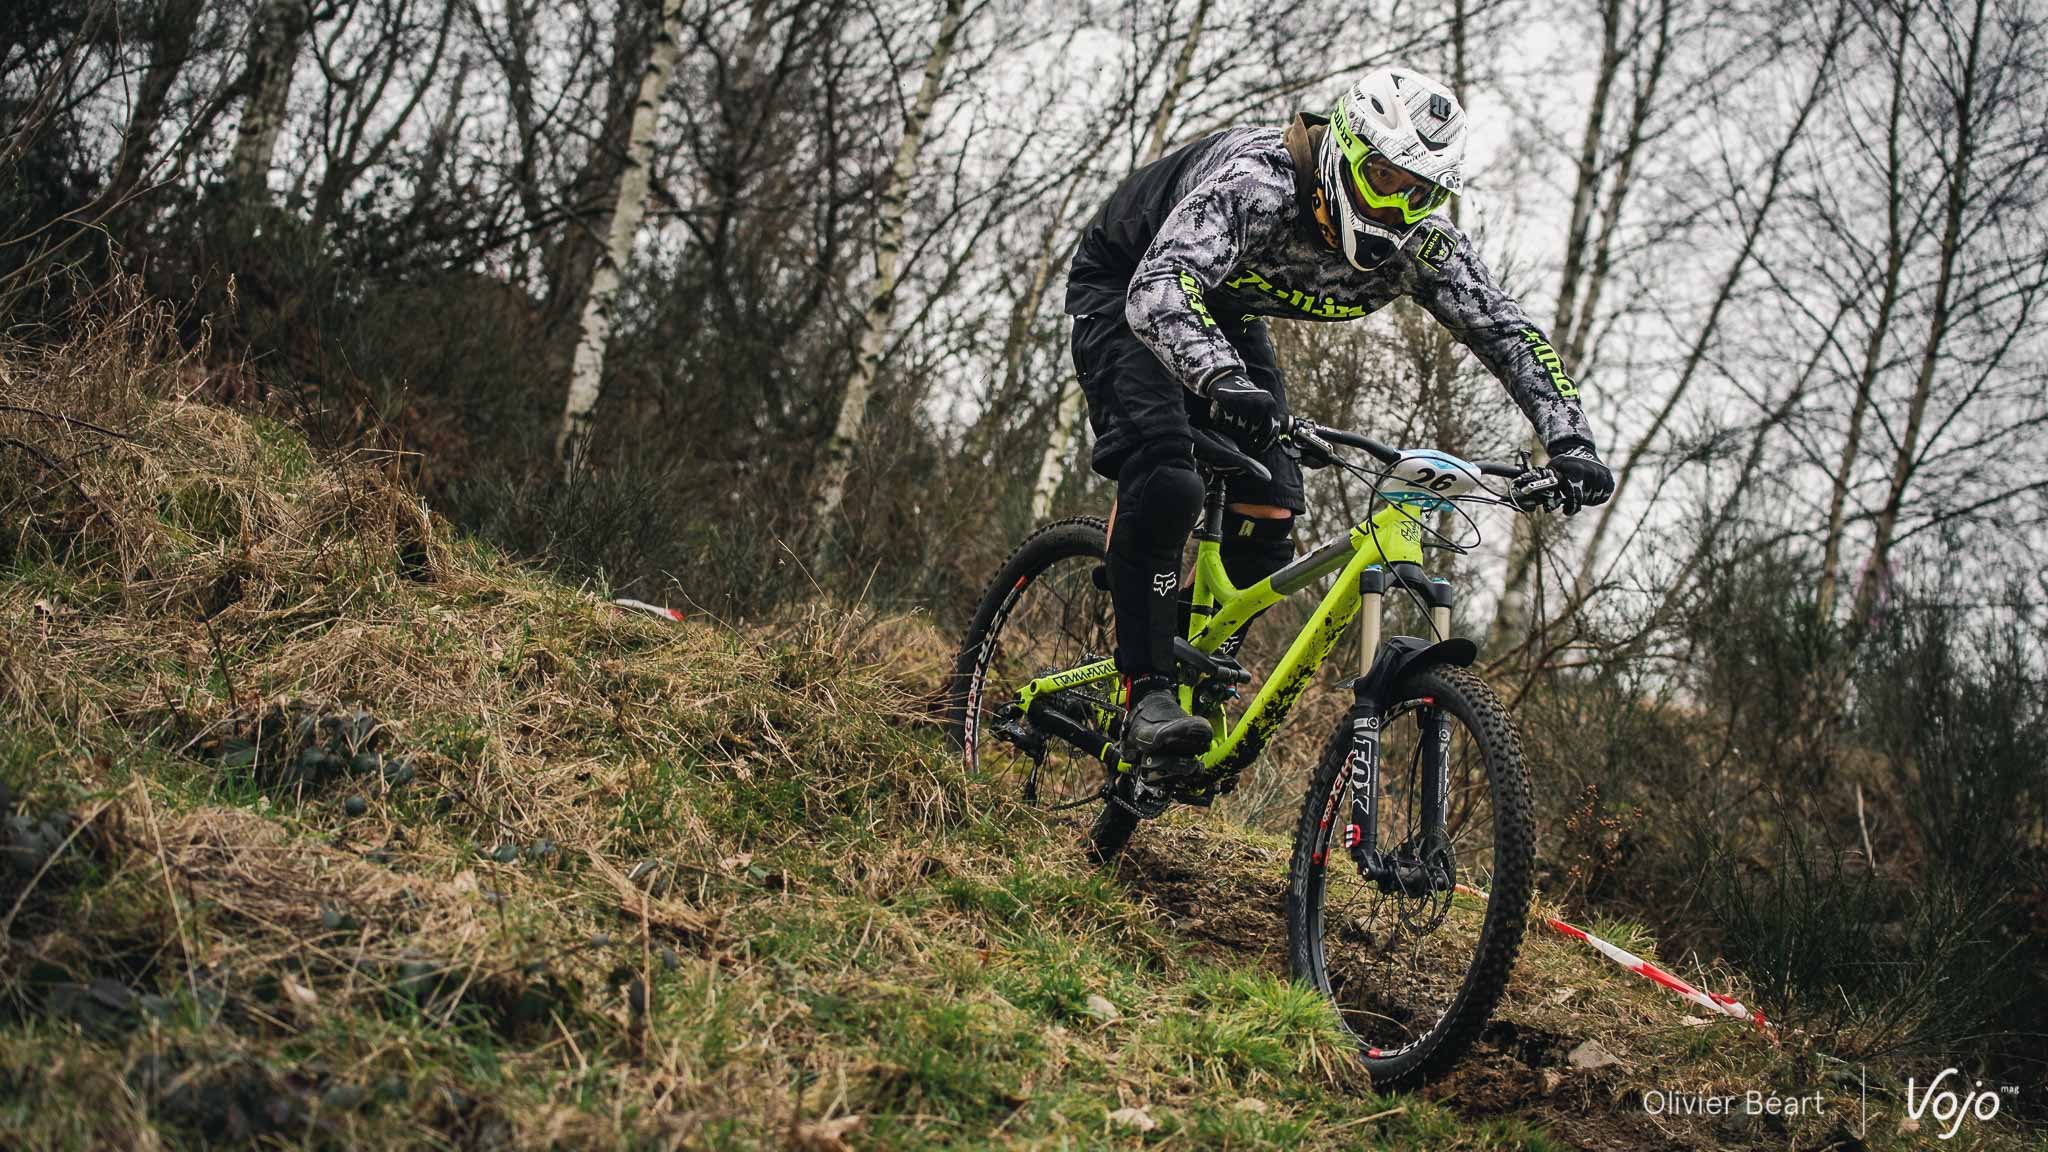 Belgian_Enduro_Cup_Chaudfontaine_2016_Copyright_OBeart_Vojomag-32